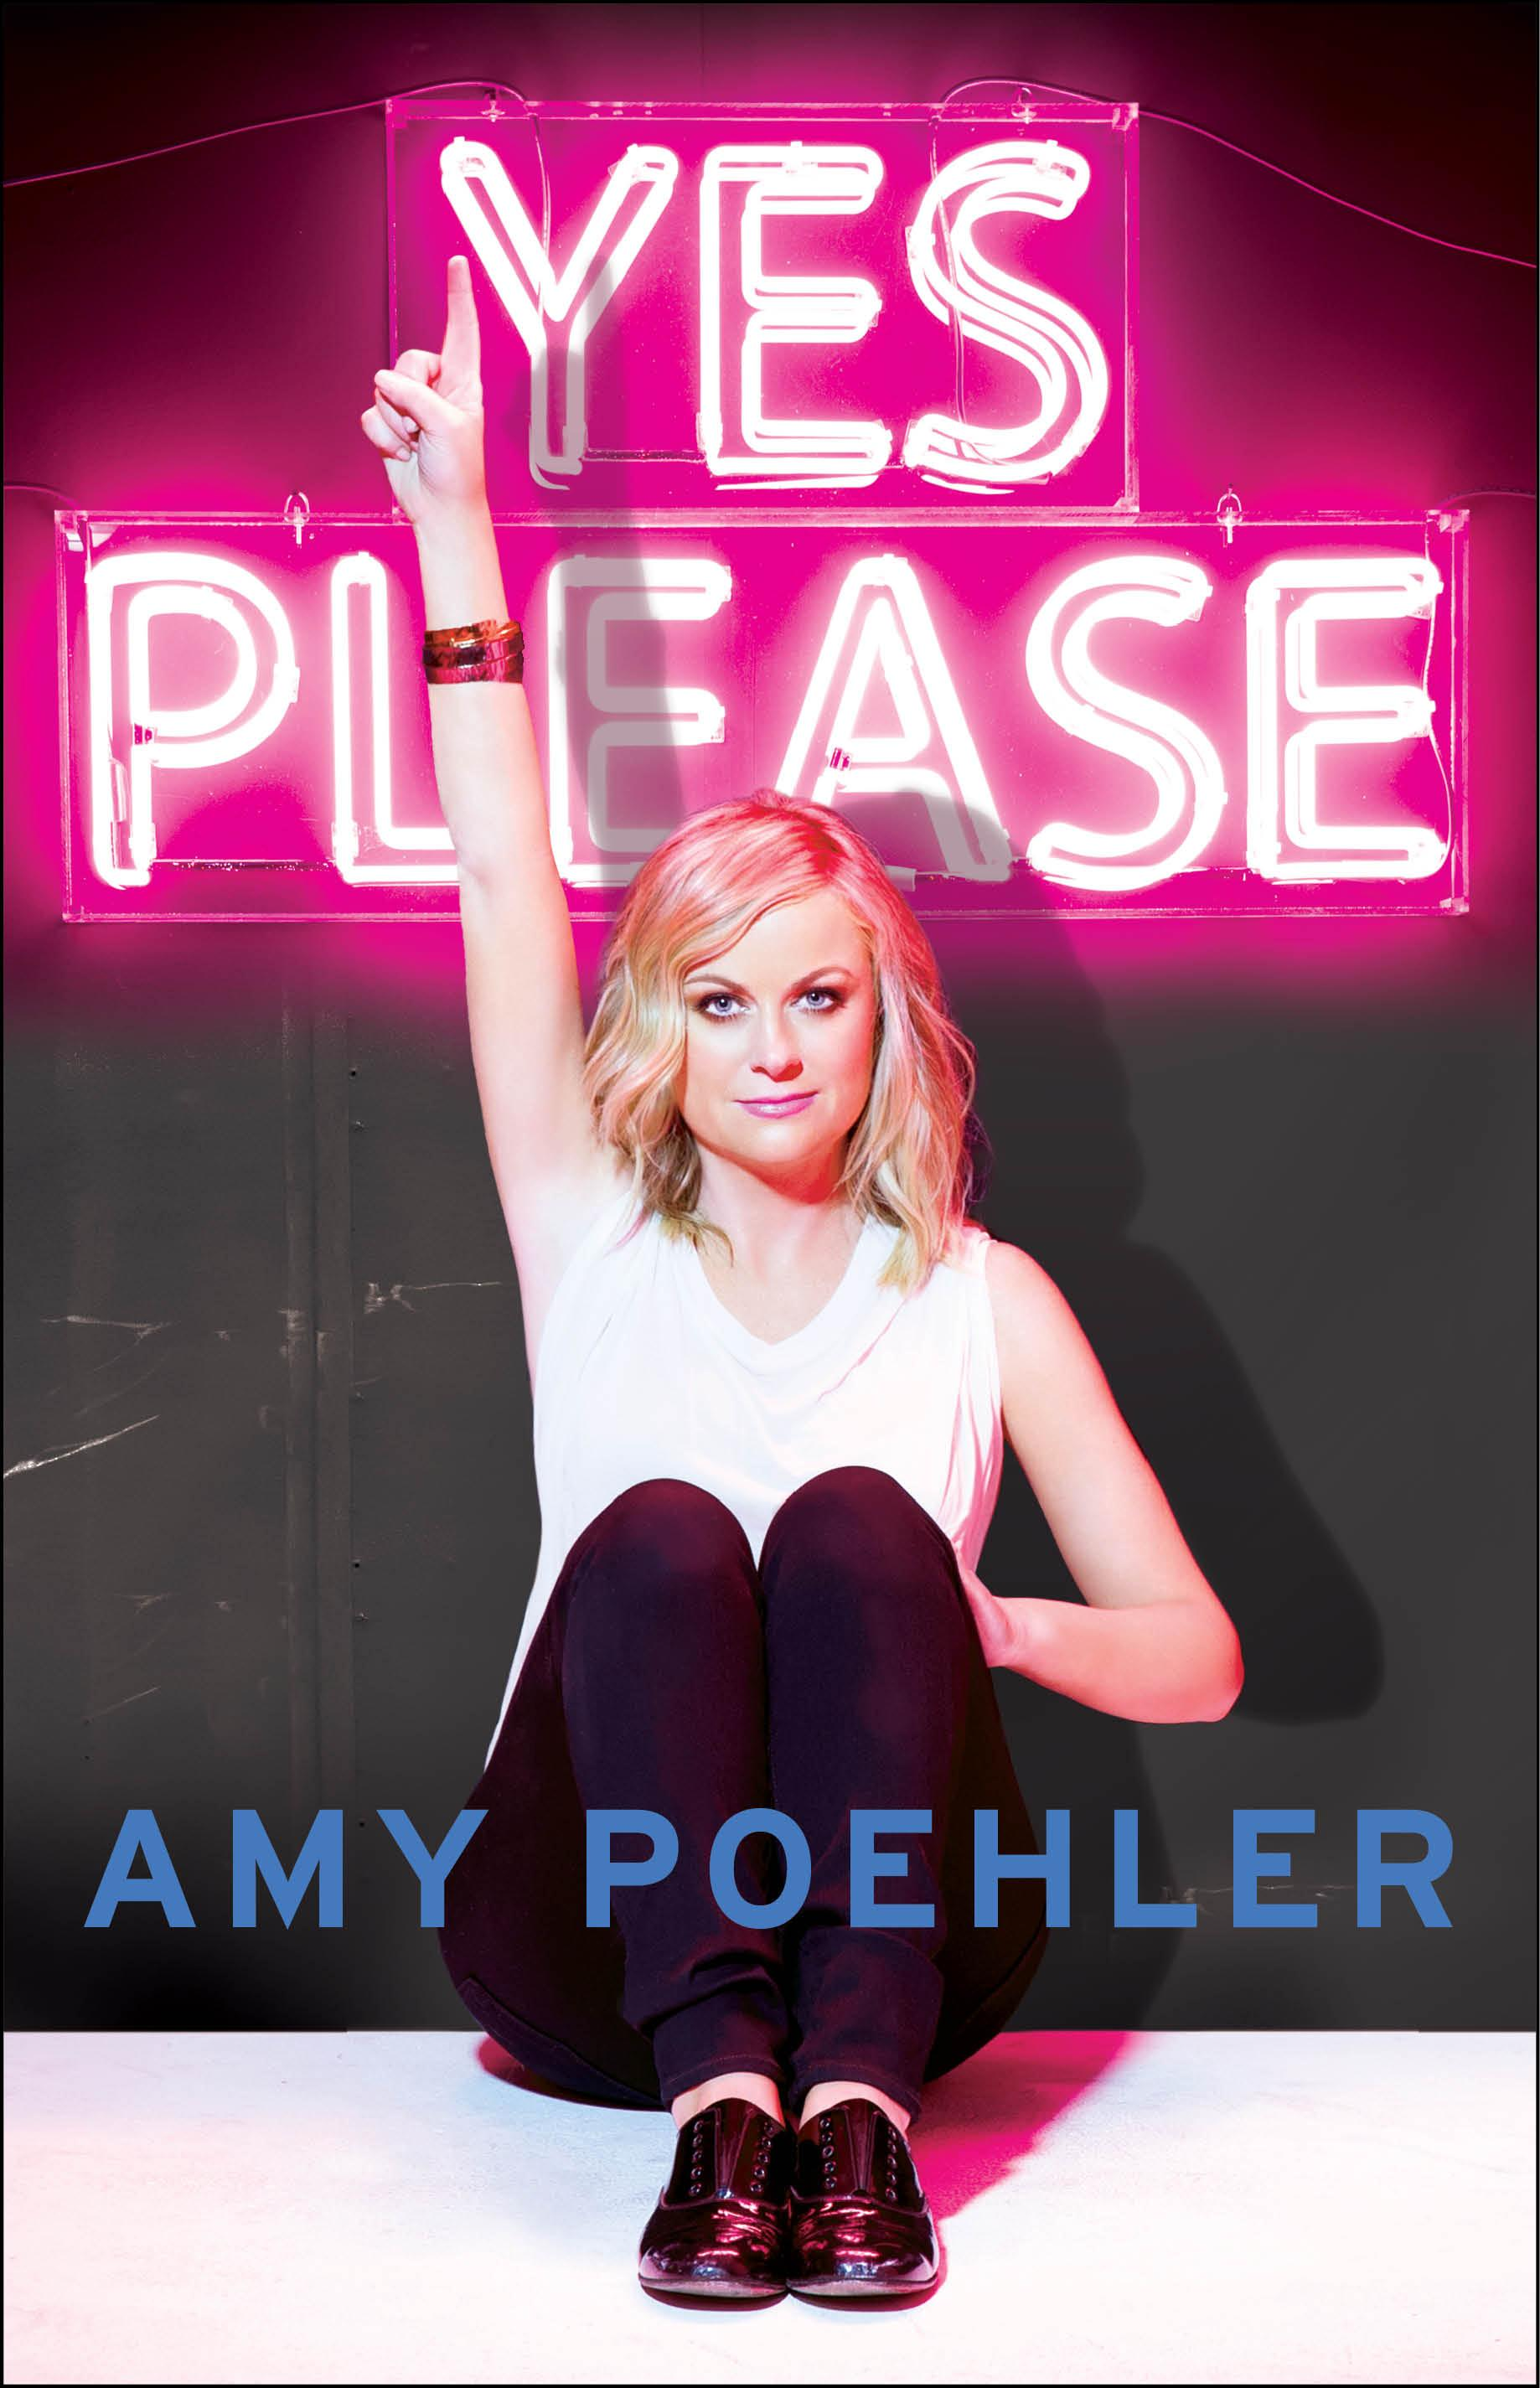 Amy Poehler (my friend) and her book: Yes Please.